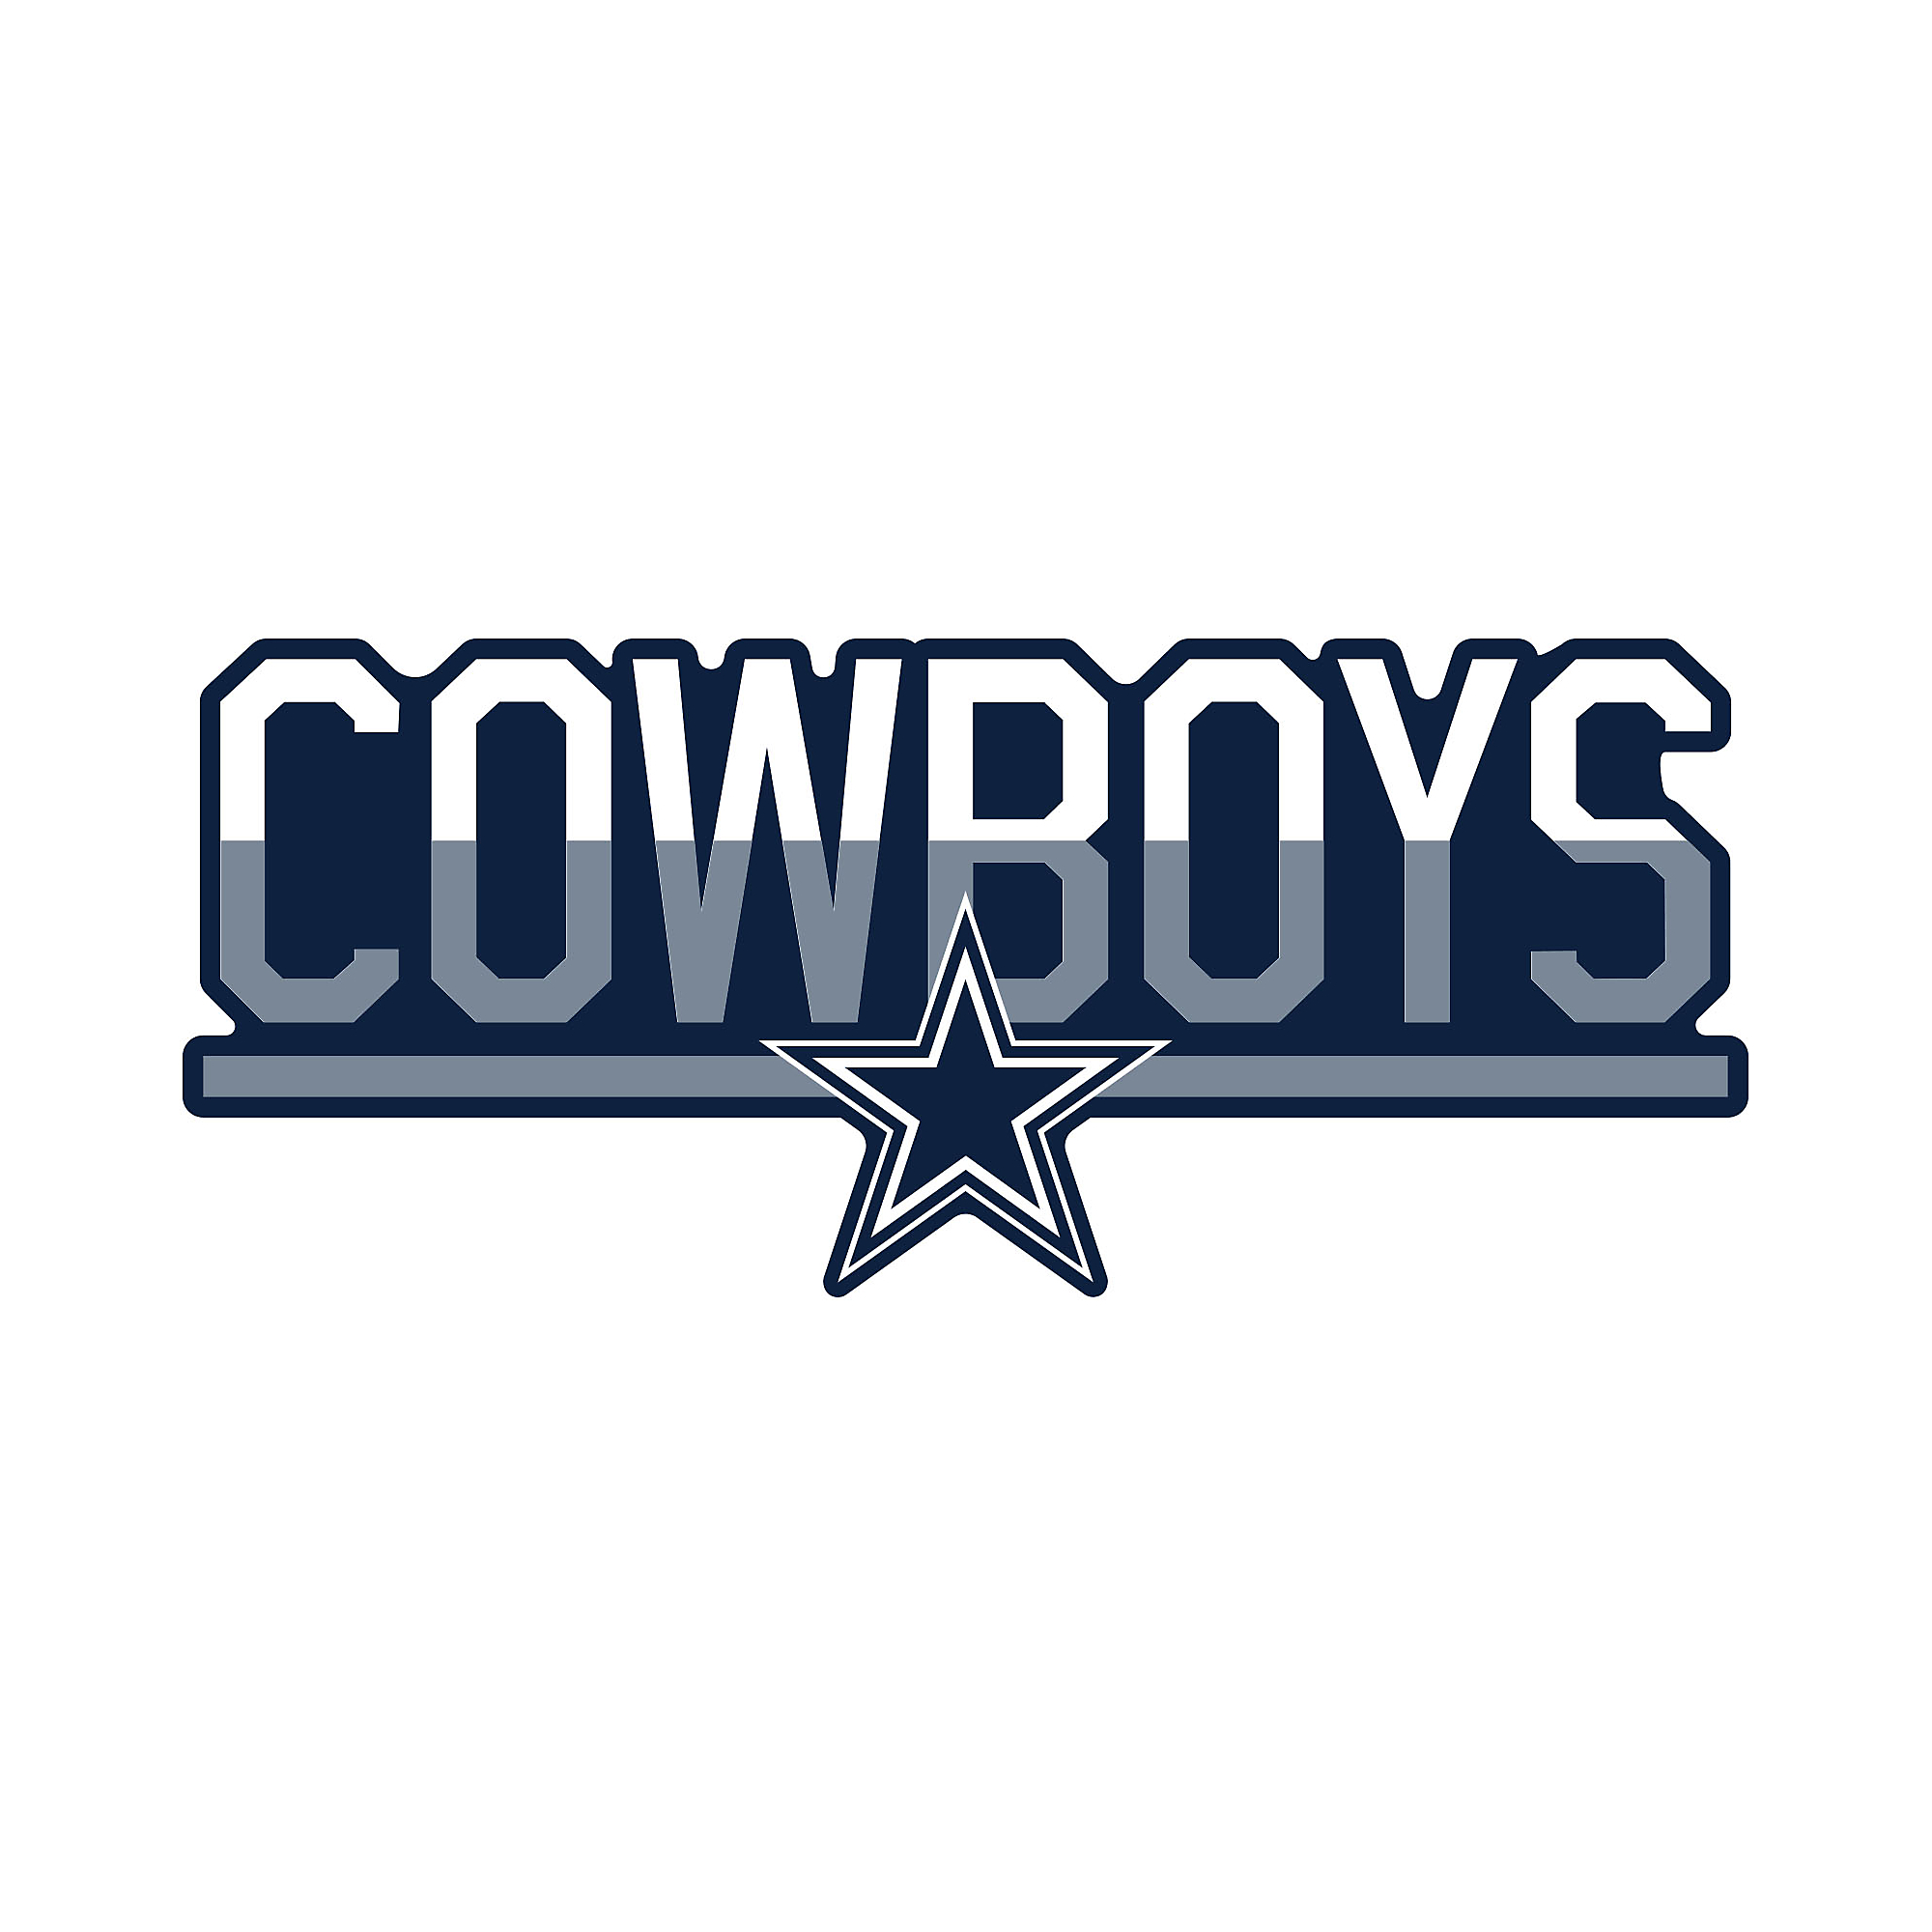 Dallas Cowboys 3x10 Duo Tone Decal